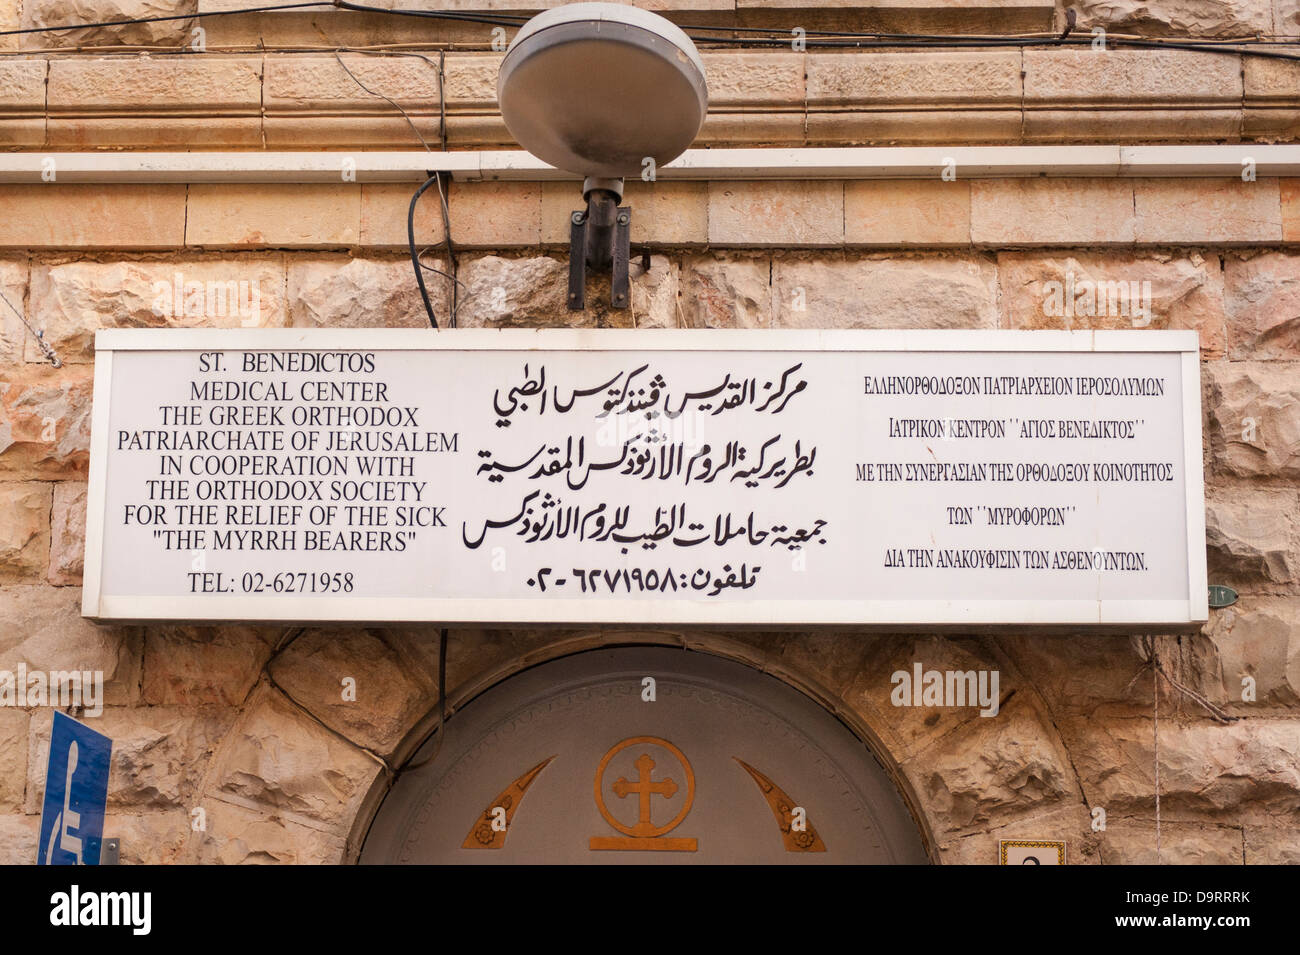 Israel Old City sign over door St Benedictos Medical Center The Greek Patrarchate of Jerusalem ' The Myrrh Bearers - Stock Image